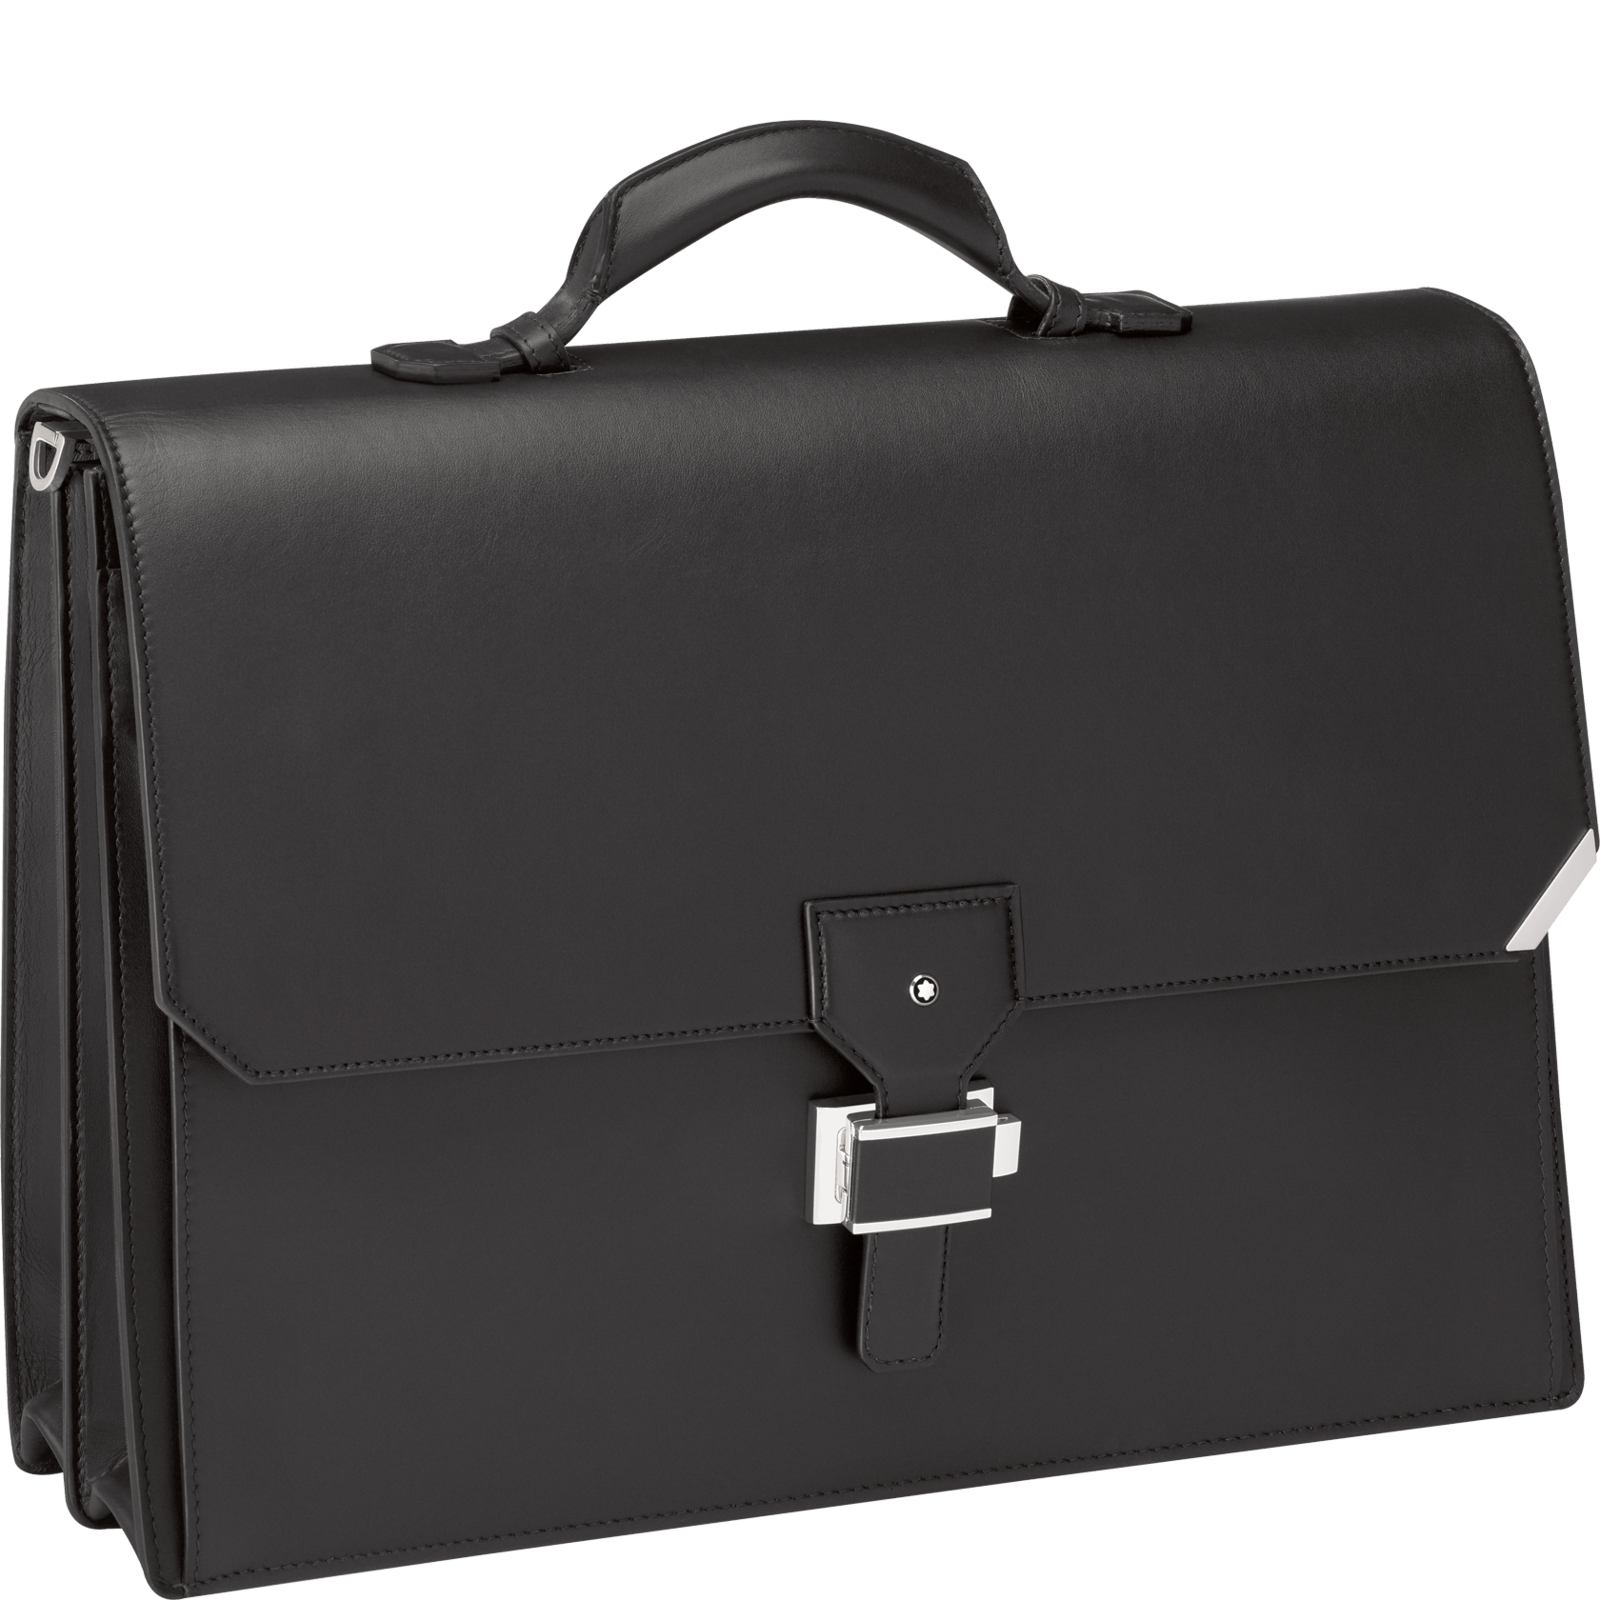 Lawyer briefcase png. Briefcases business bags leather